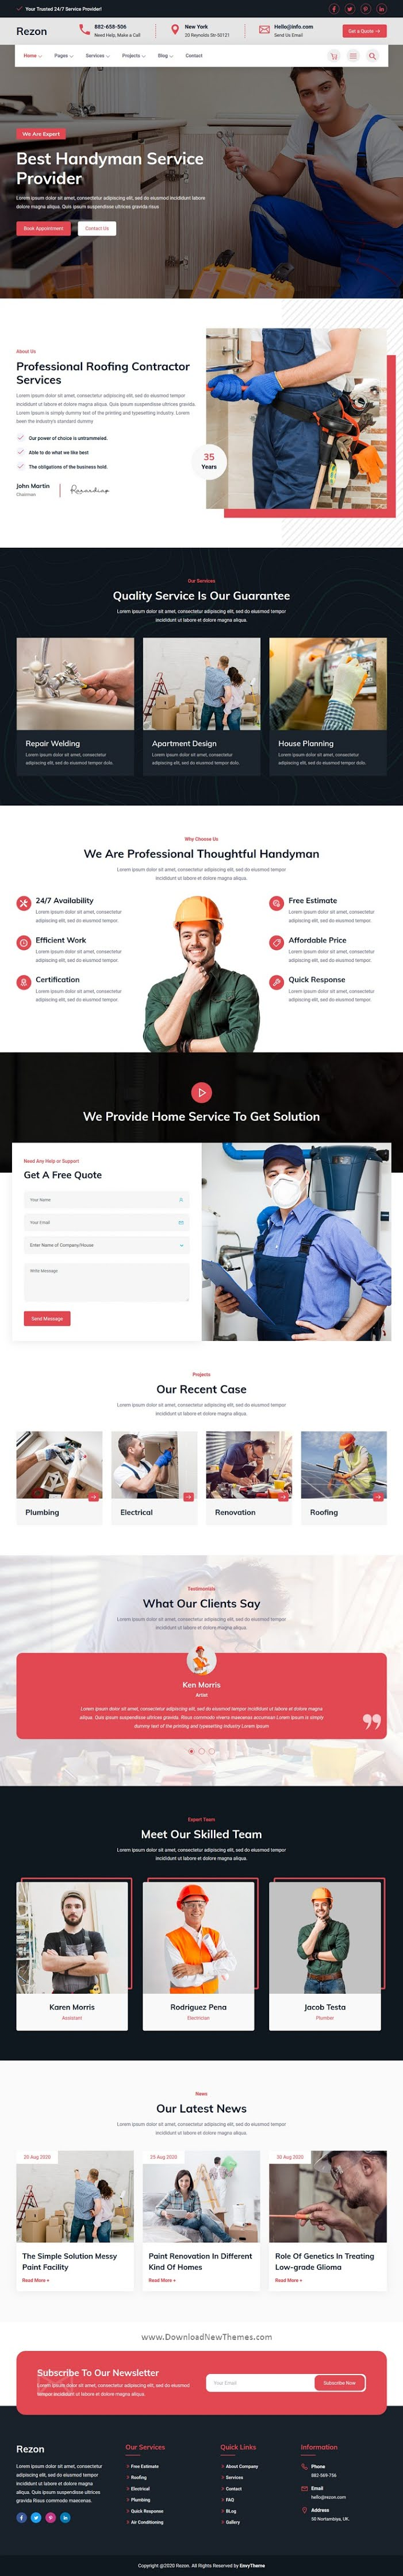 Renovation & Maintenance Services Website Theme